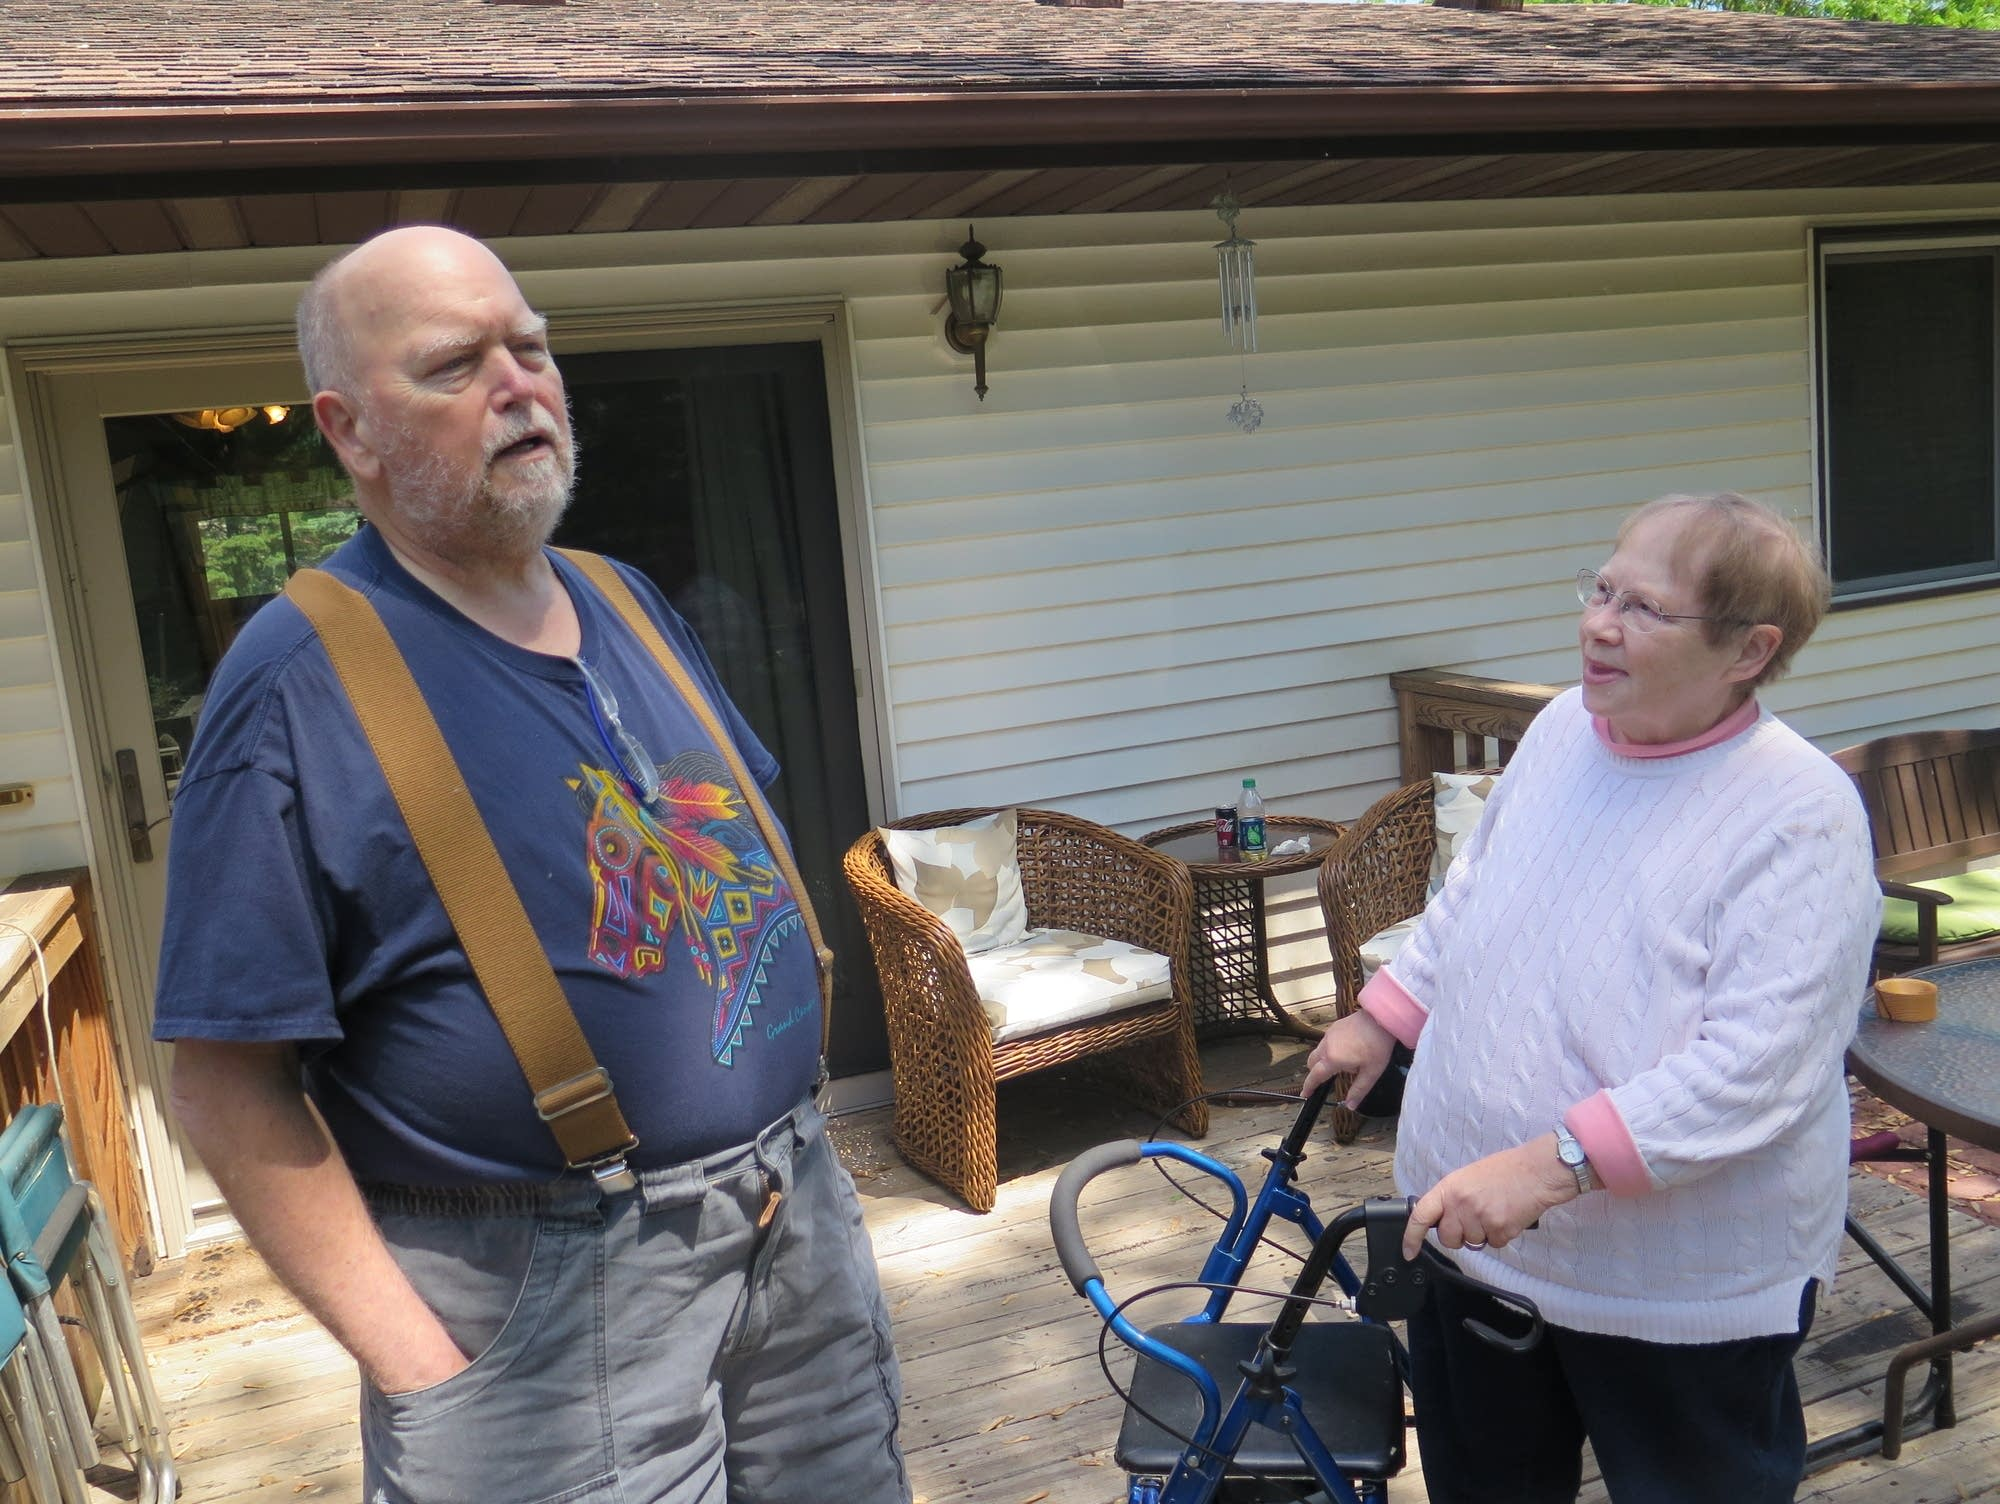 Pete and Rosemary Johnson use medical marijuana to deal with pain.